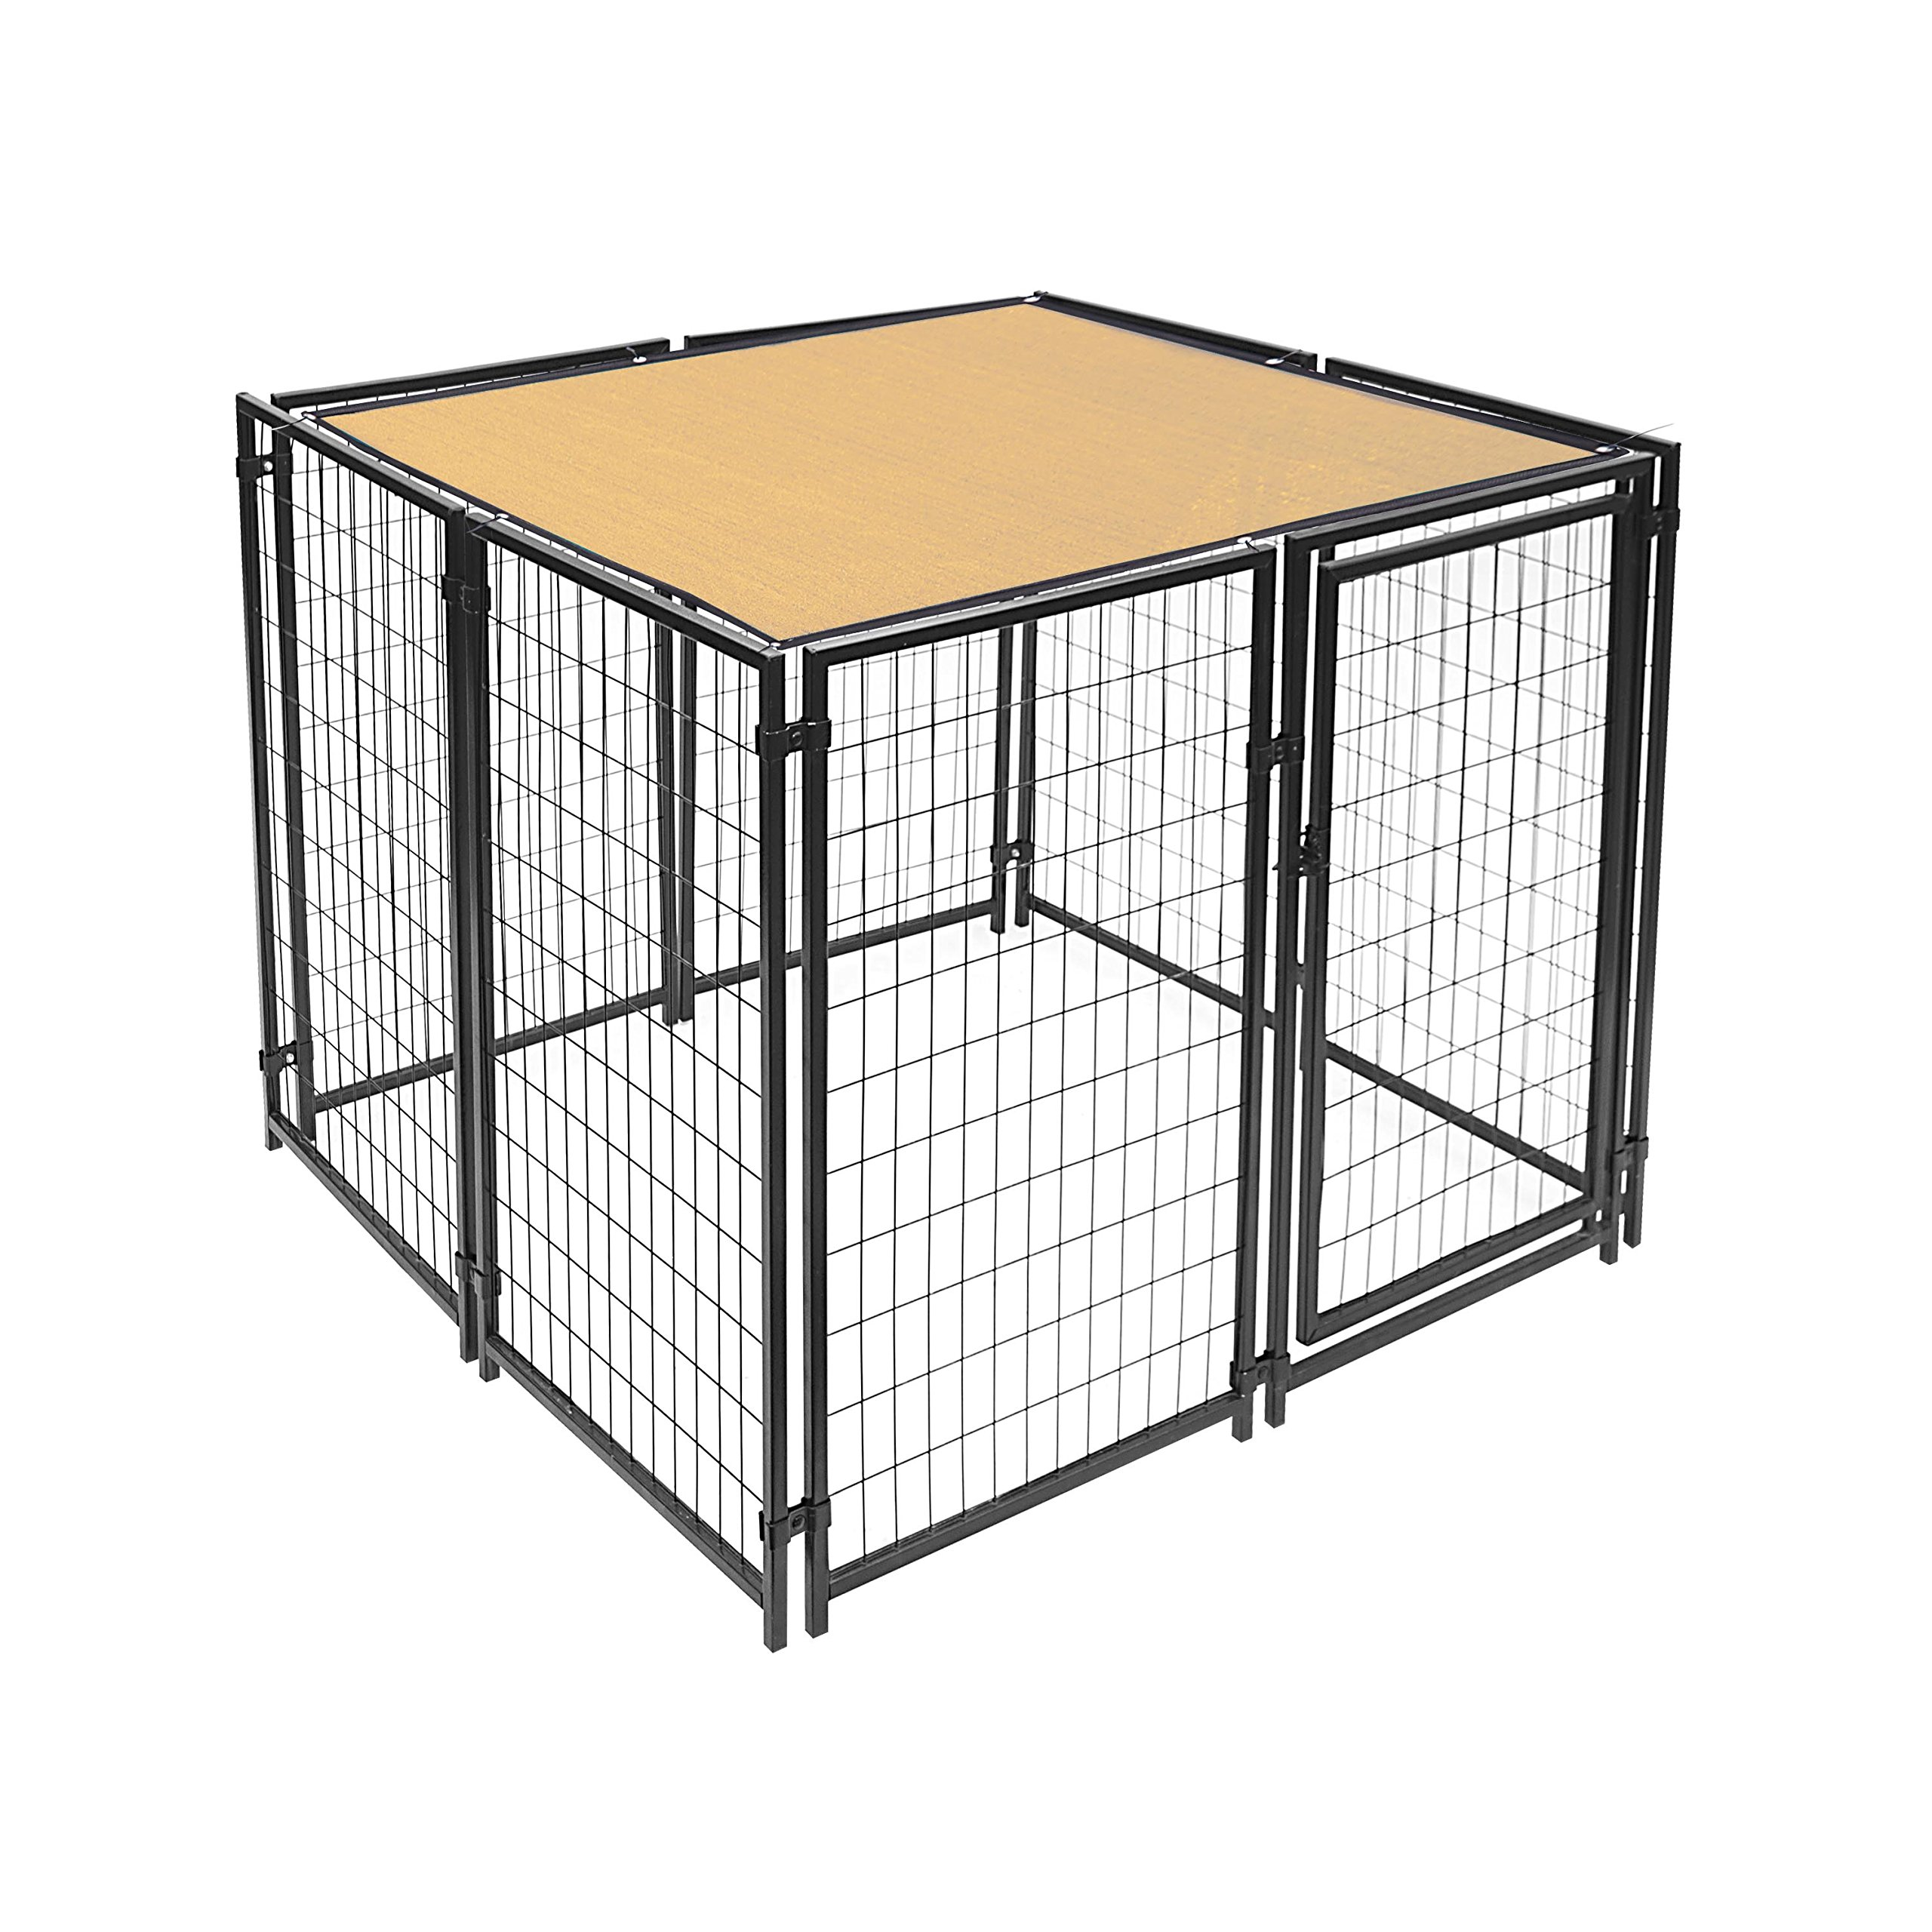 ALEKO PLK0505BE Feet Pet Dog Kennel Sun Shade Cover Weather Protection with Aluminum Grommets 5 x 5 Feet Beige